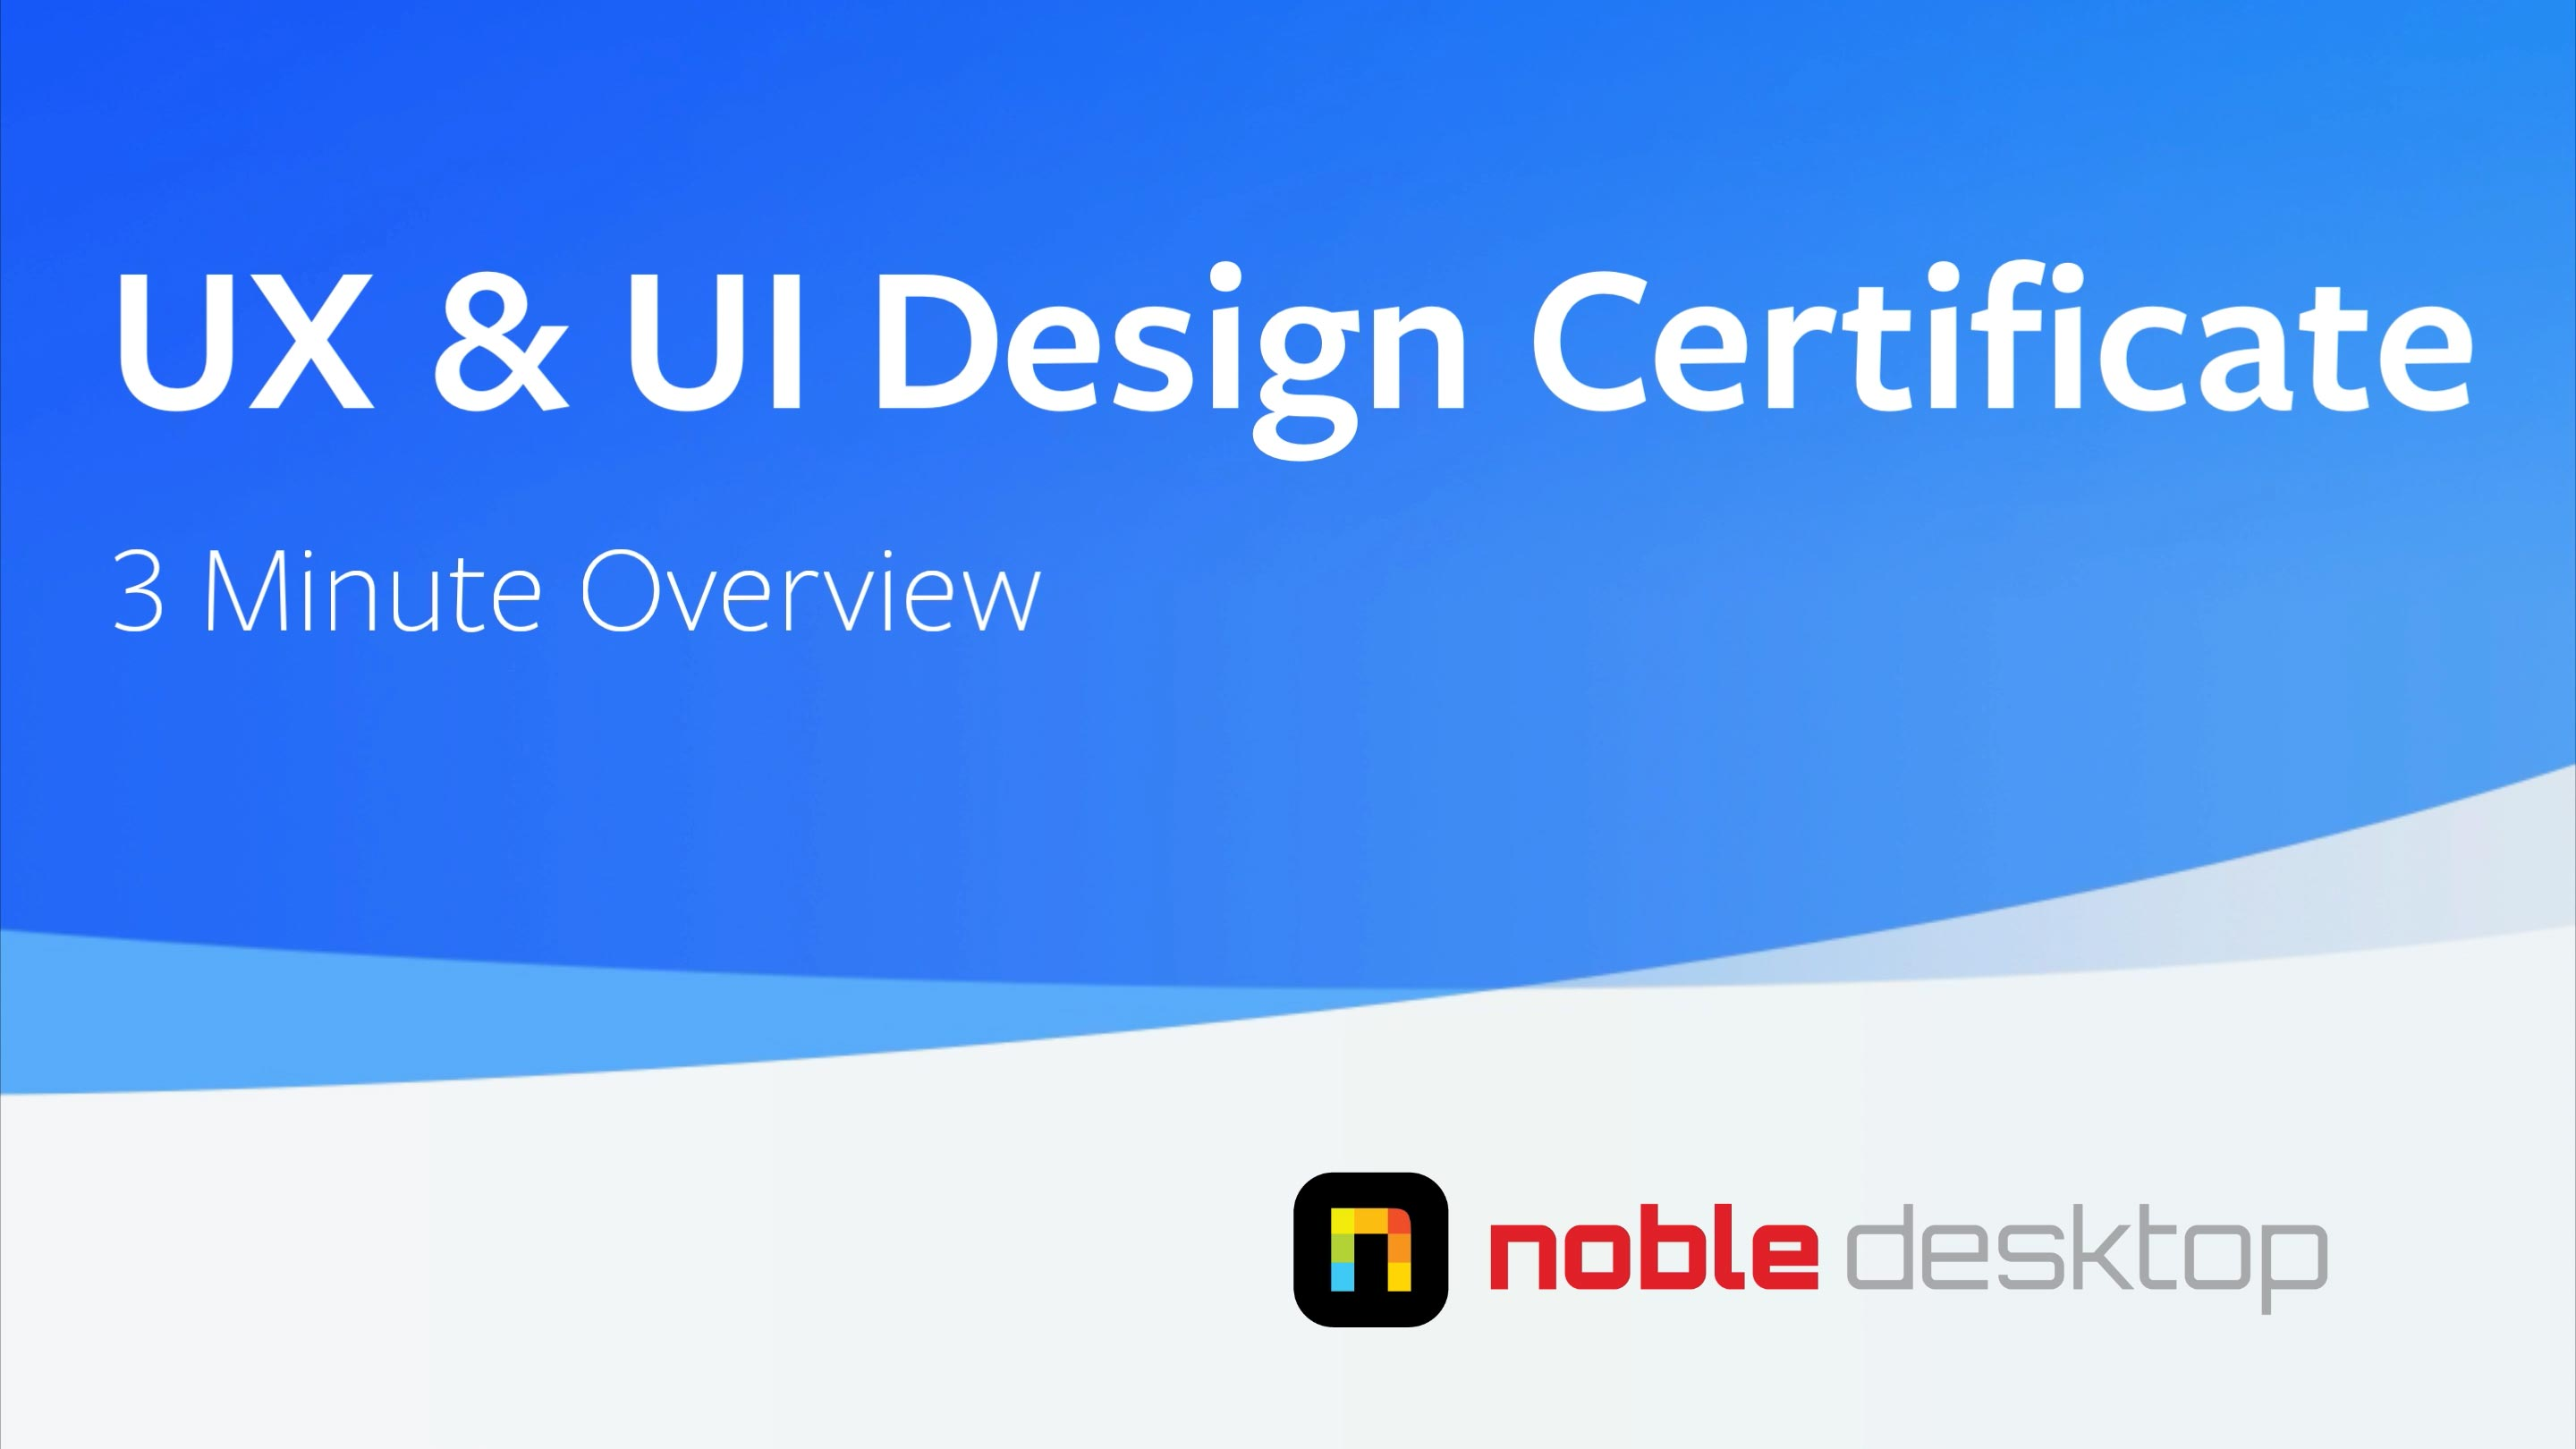 UX & UI Design Certificate Class Overview